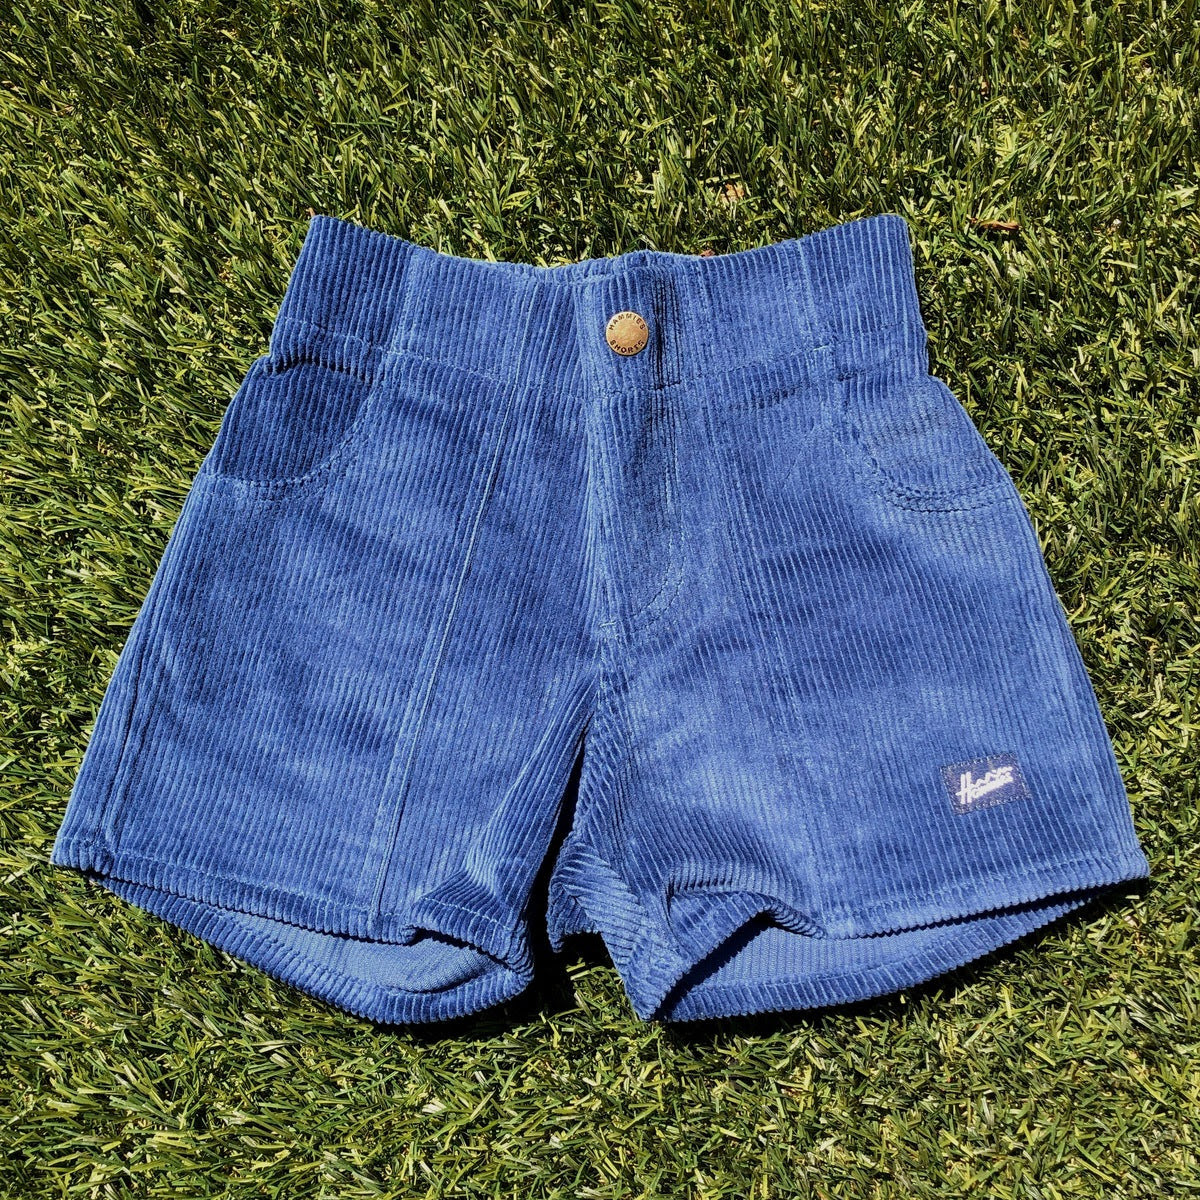 The new Kid's Short